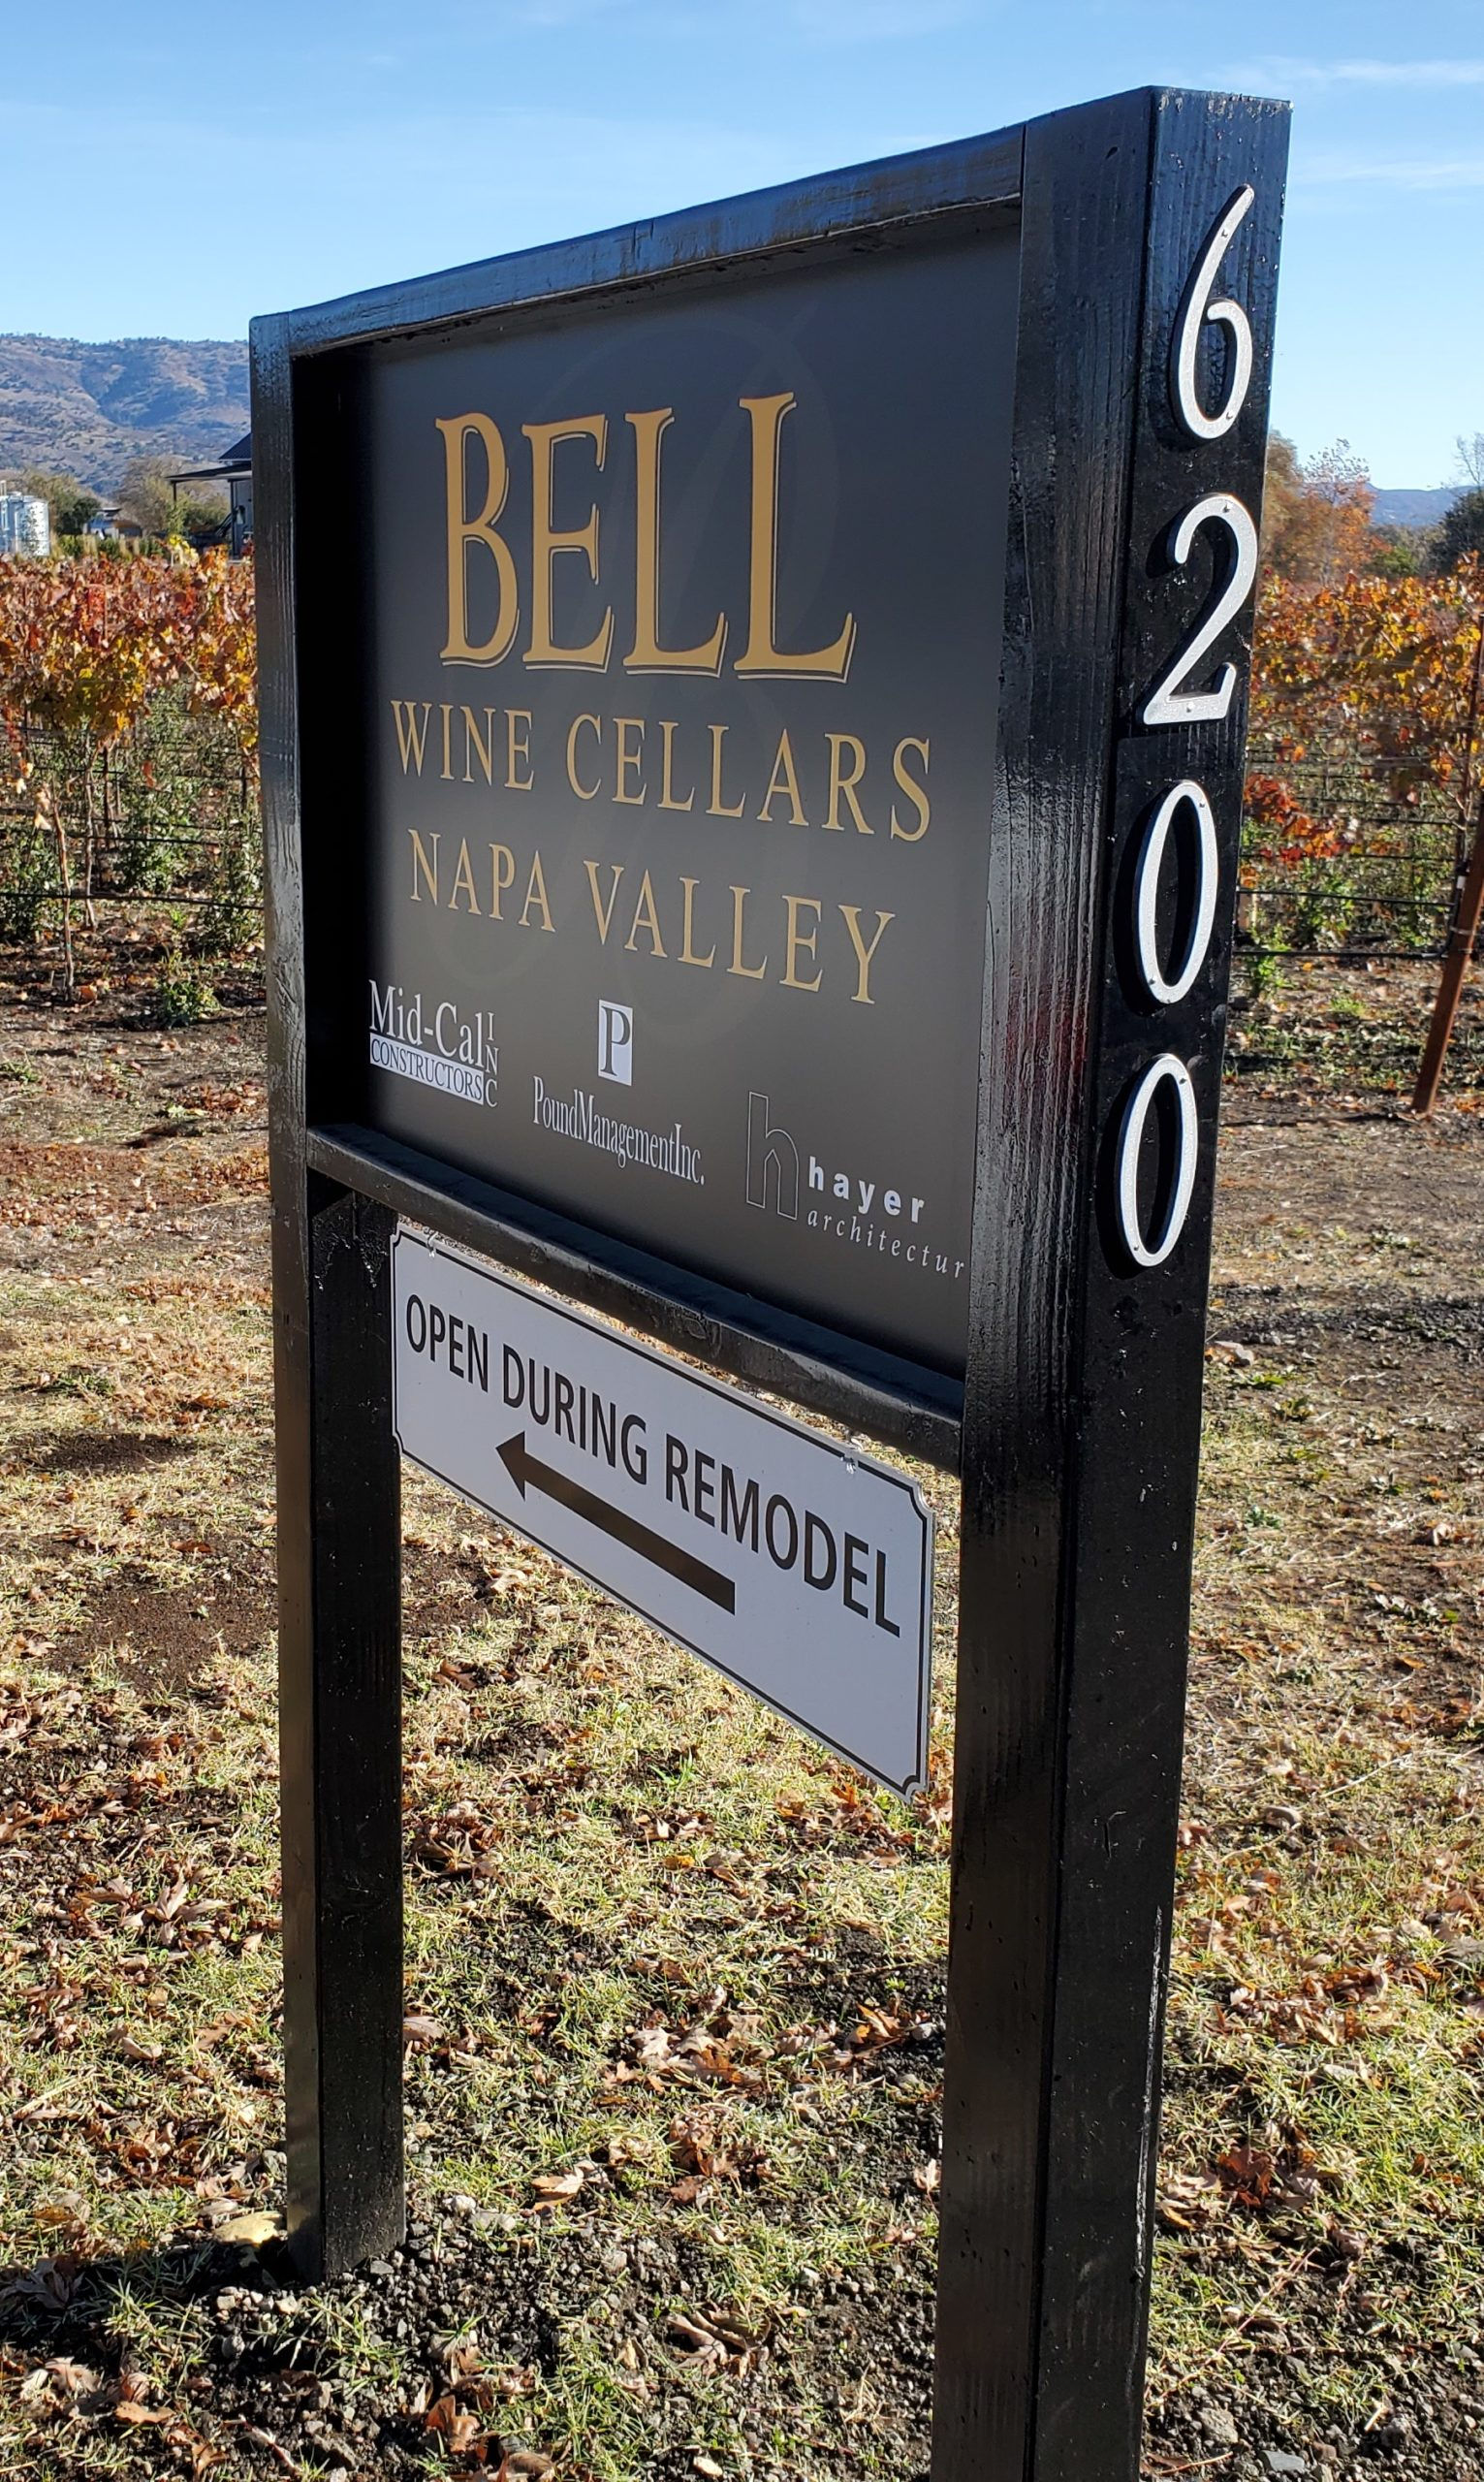 Bell Wine Cellars Remodel Renovation Commercial Construction Companies Near Me General Contractor Napa Winery Vineyard Open During Remodel